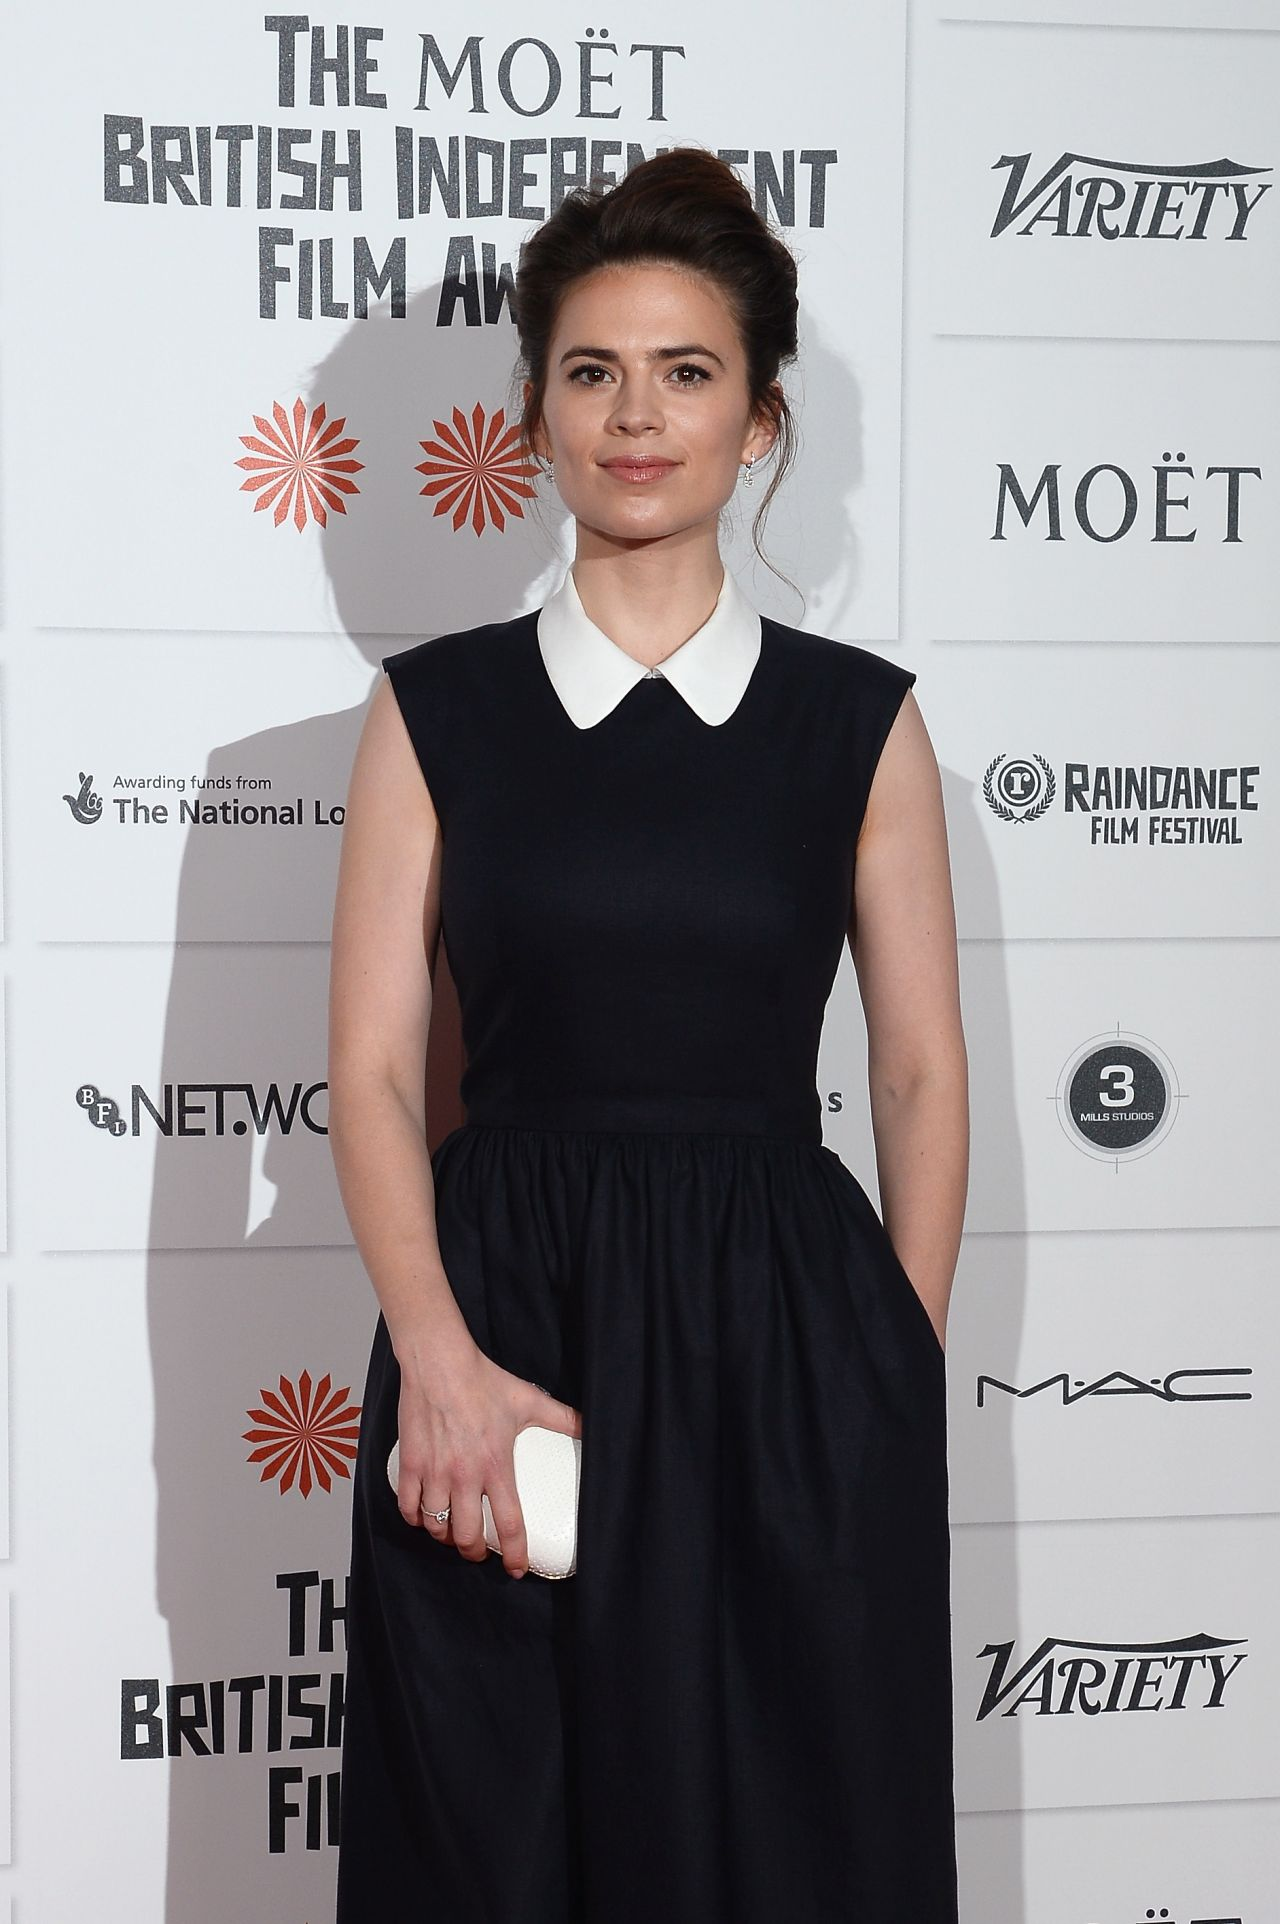 Hayley Atwell Attends 2013 Moet British Independent Film Awards in London - December 2013